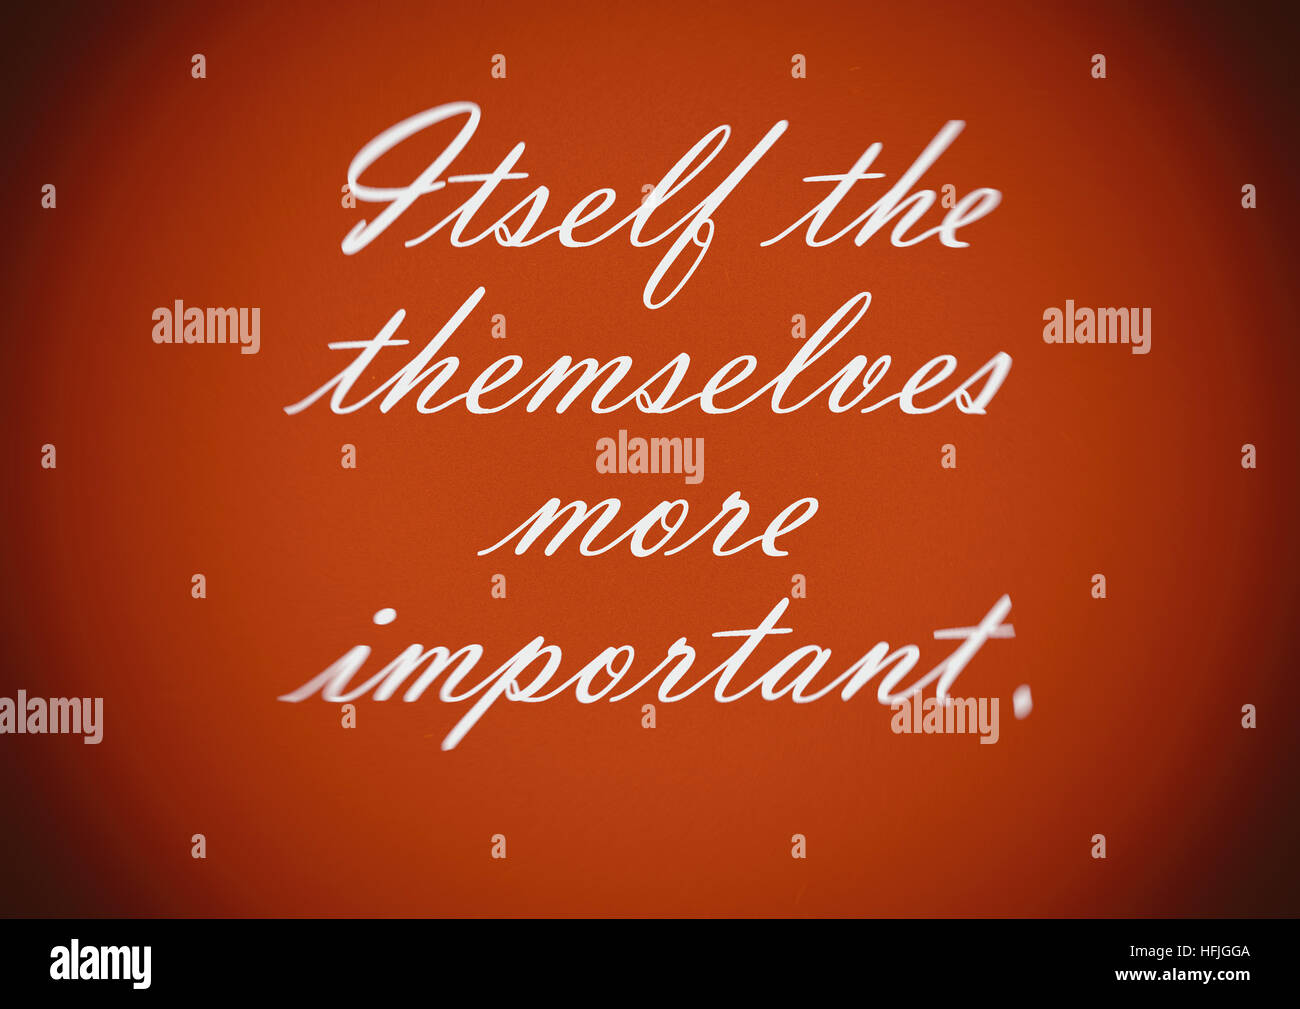 Itself themselves the more important. Brown background, white letters. Motivation, poster, quote, illustration. - Stock Image